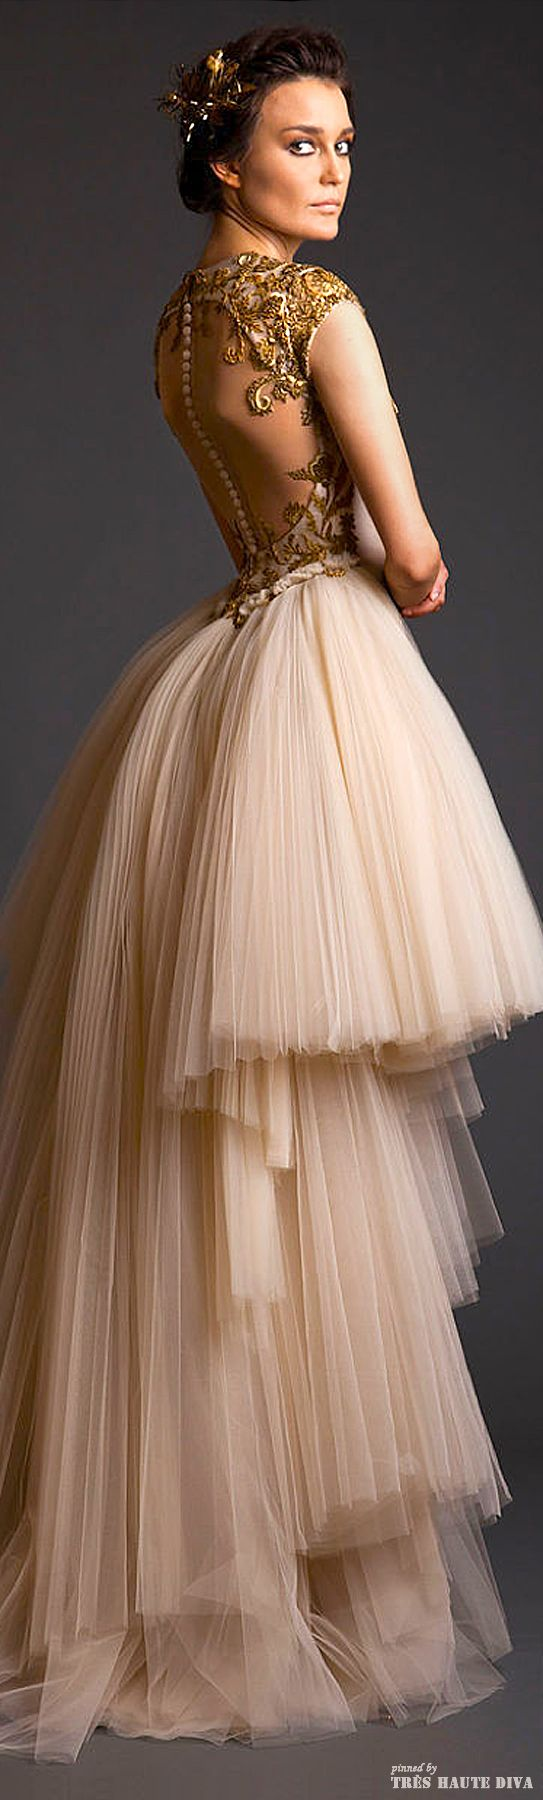 Krikor Jabotian Couture...The attention to detail on this gown is amazing and the back is gorgeous!